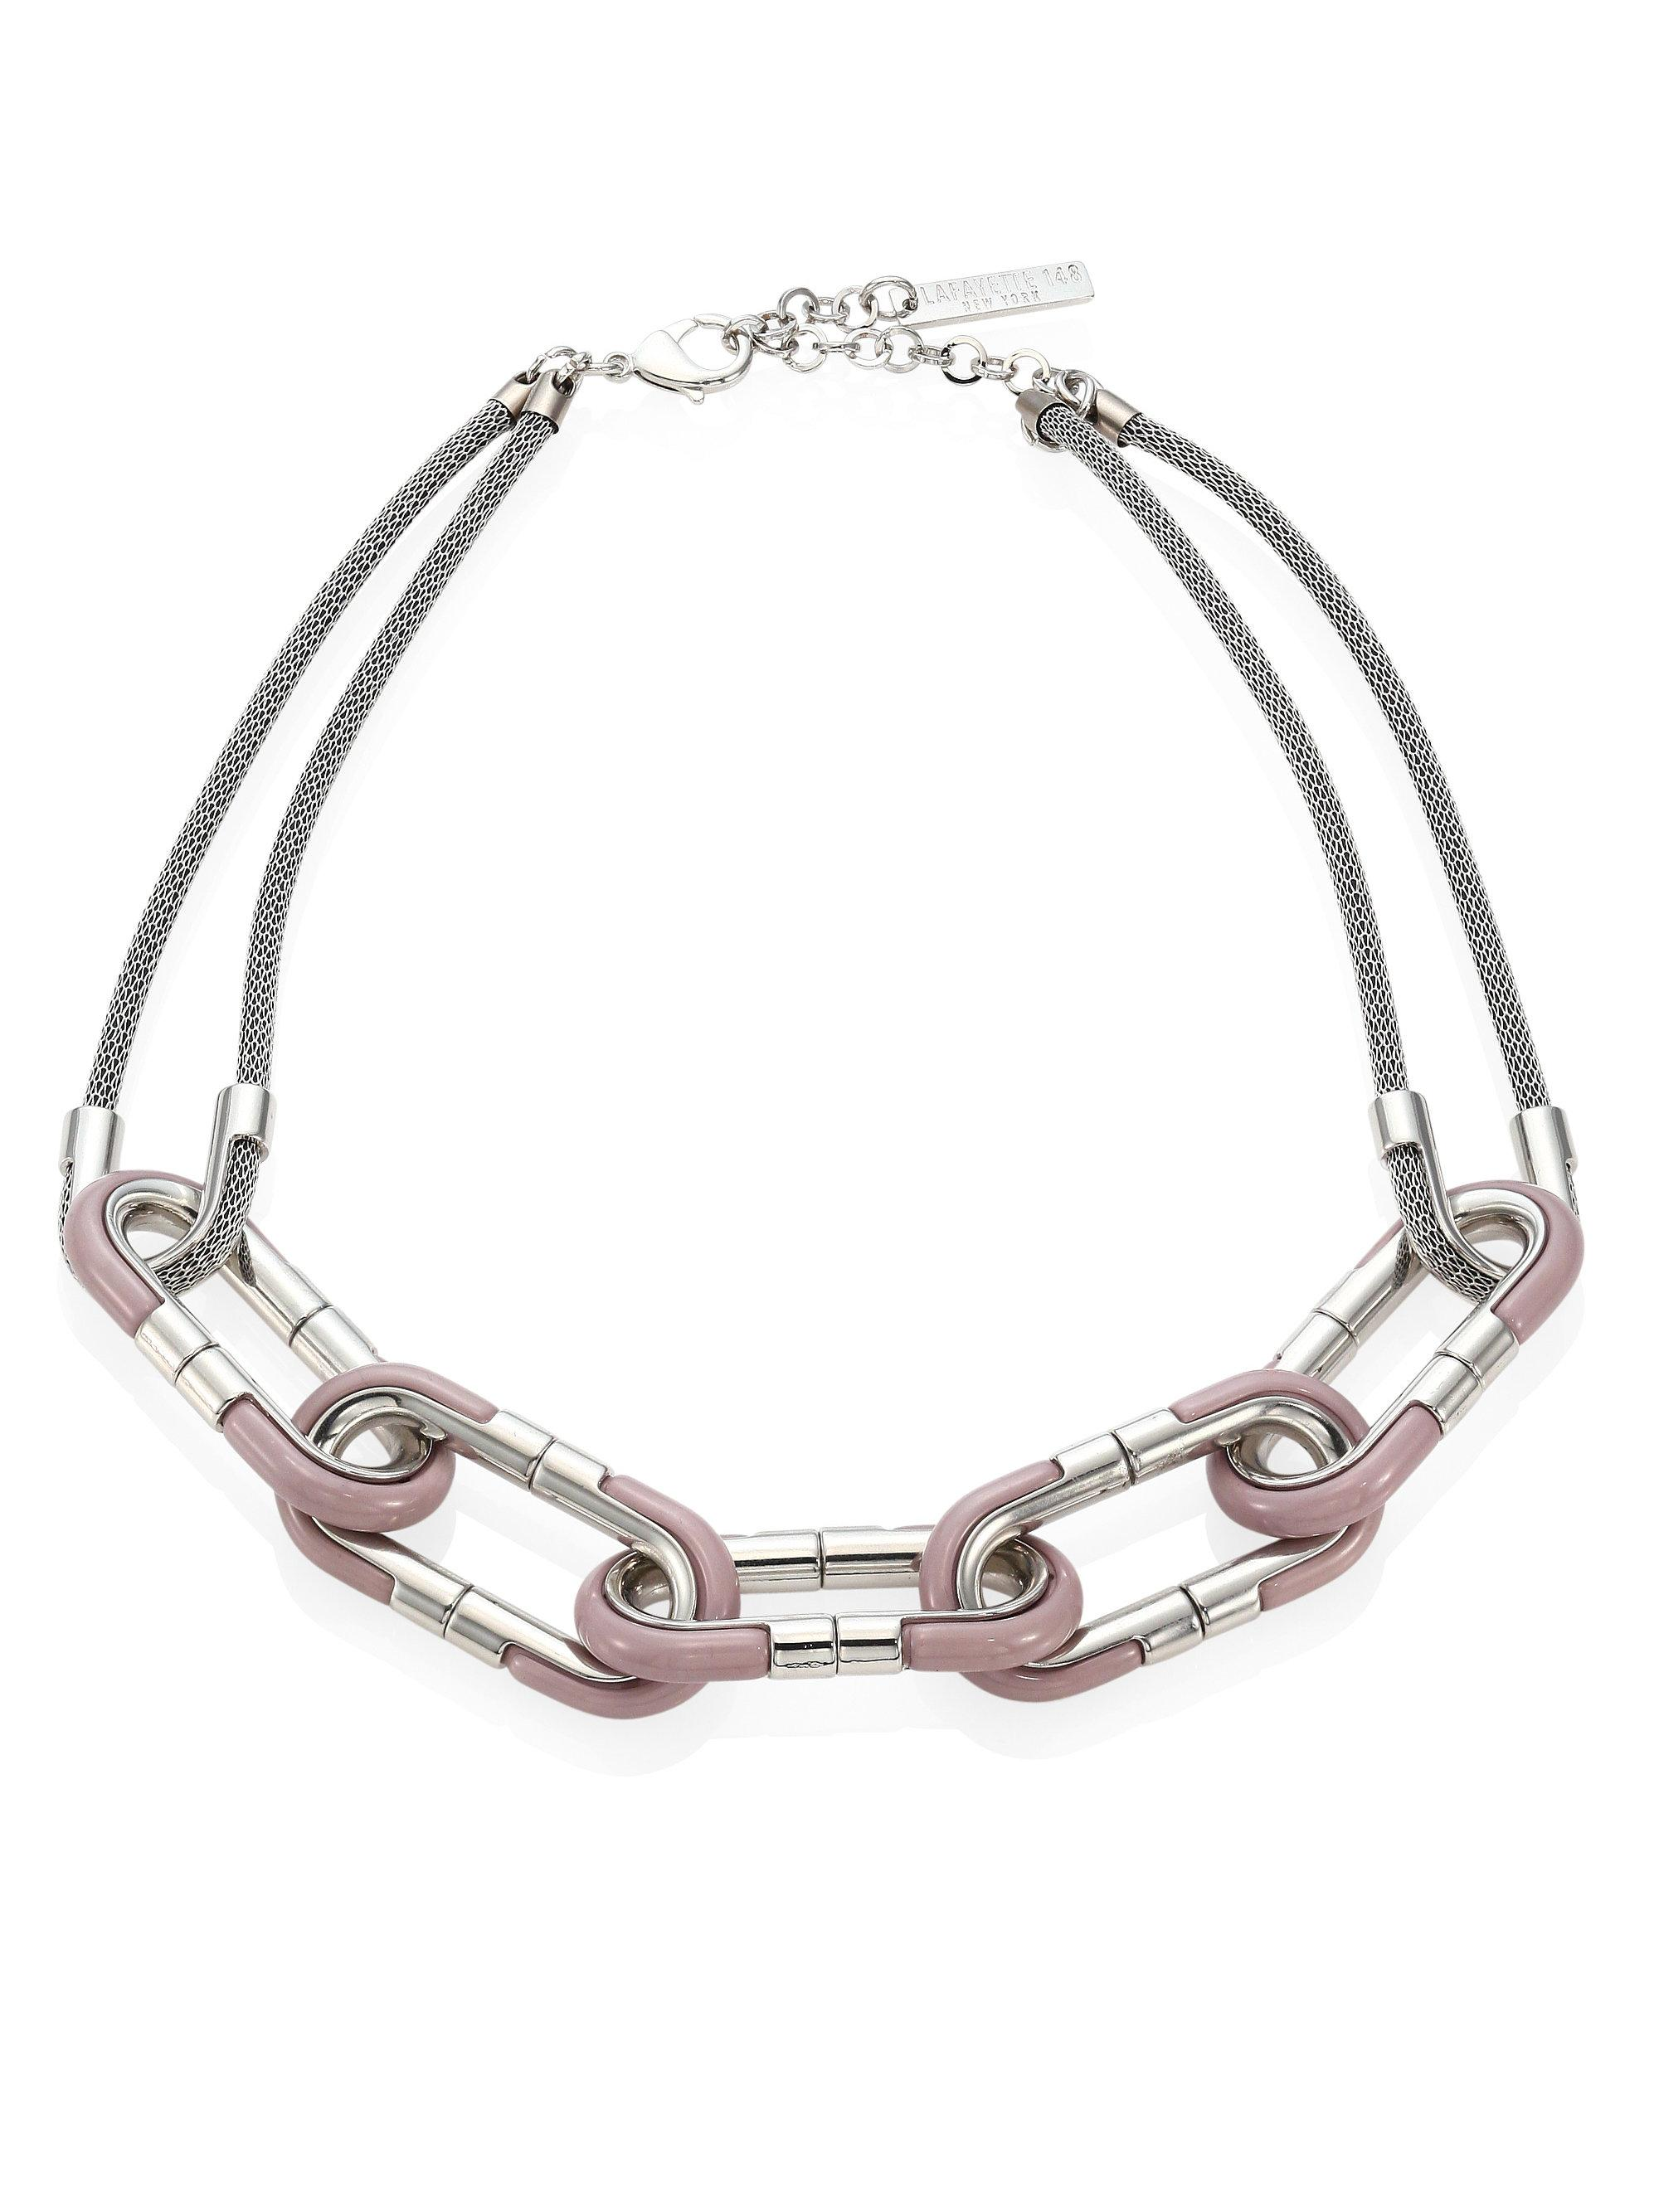 ... link necklace 228 from saks fifth avenue free shipping with saks fifth